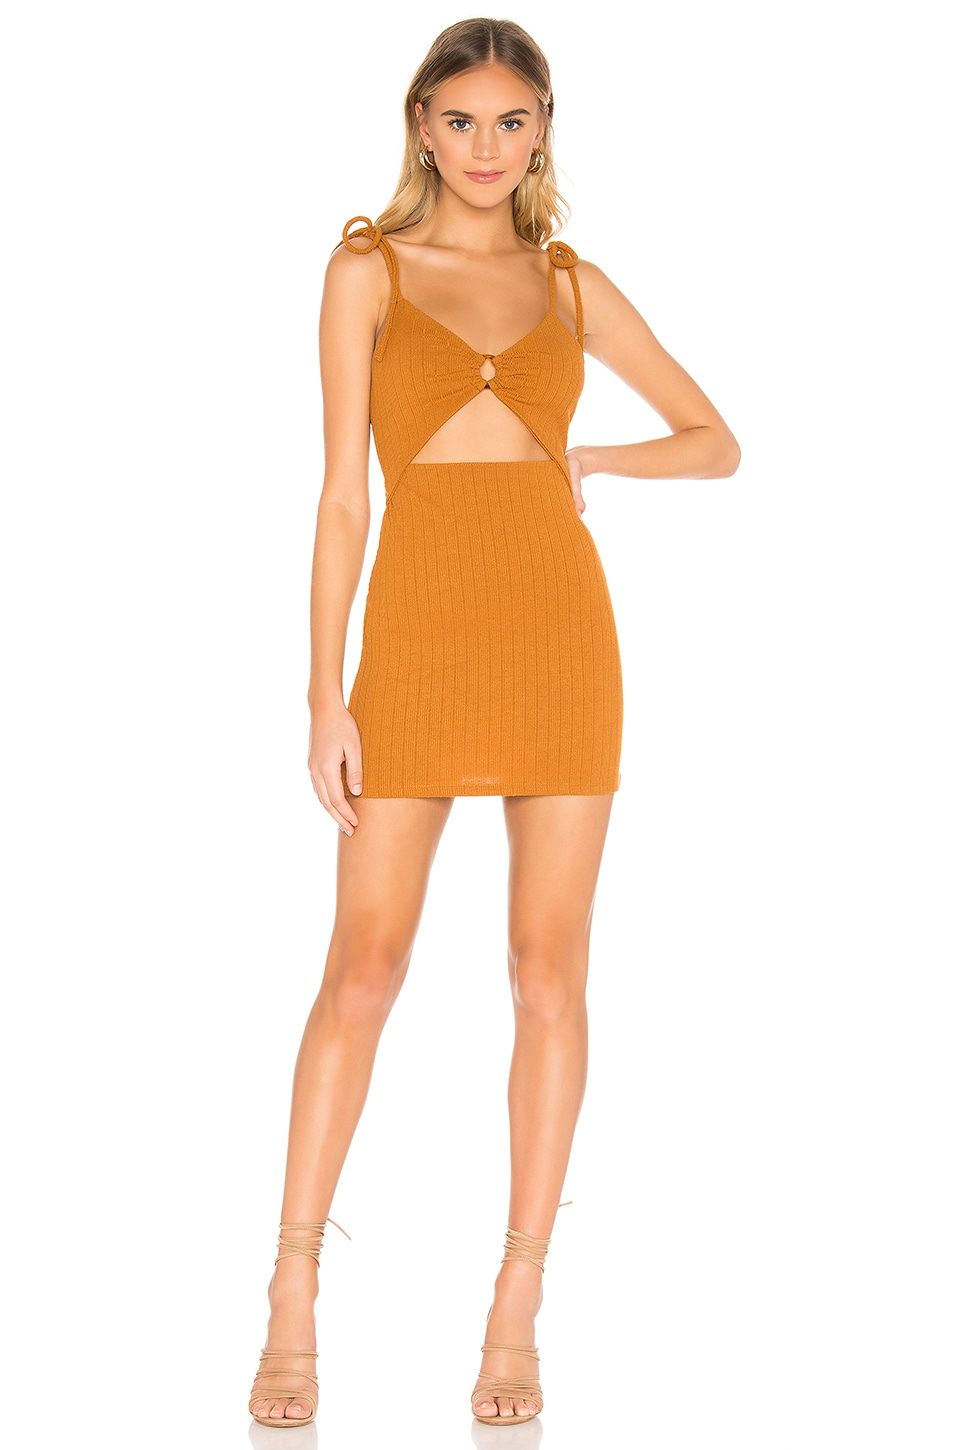 Privacy Please Pismo Mini Dress in Burnt Orange